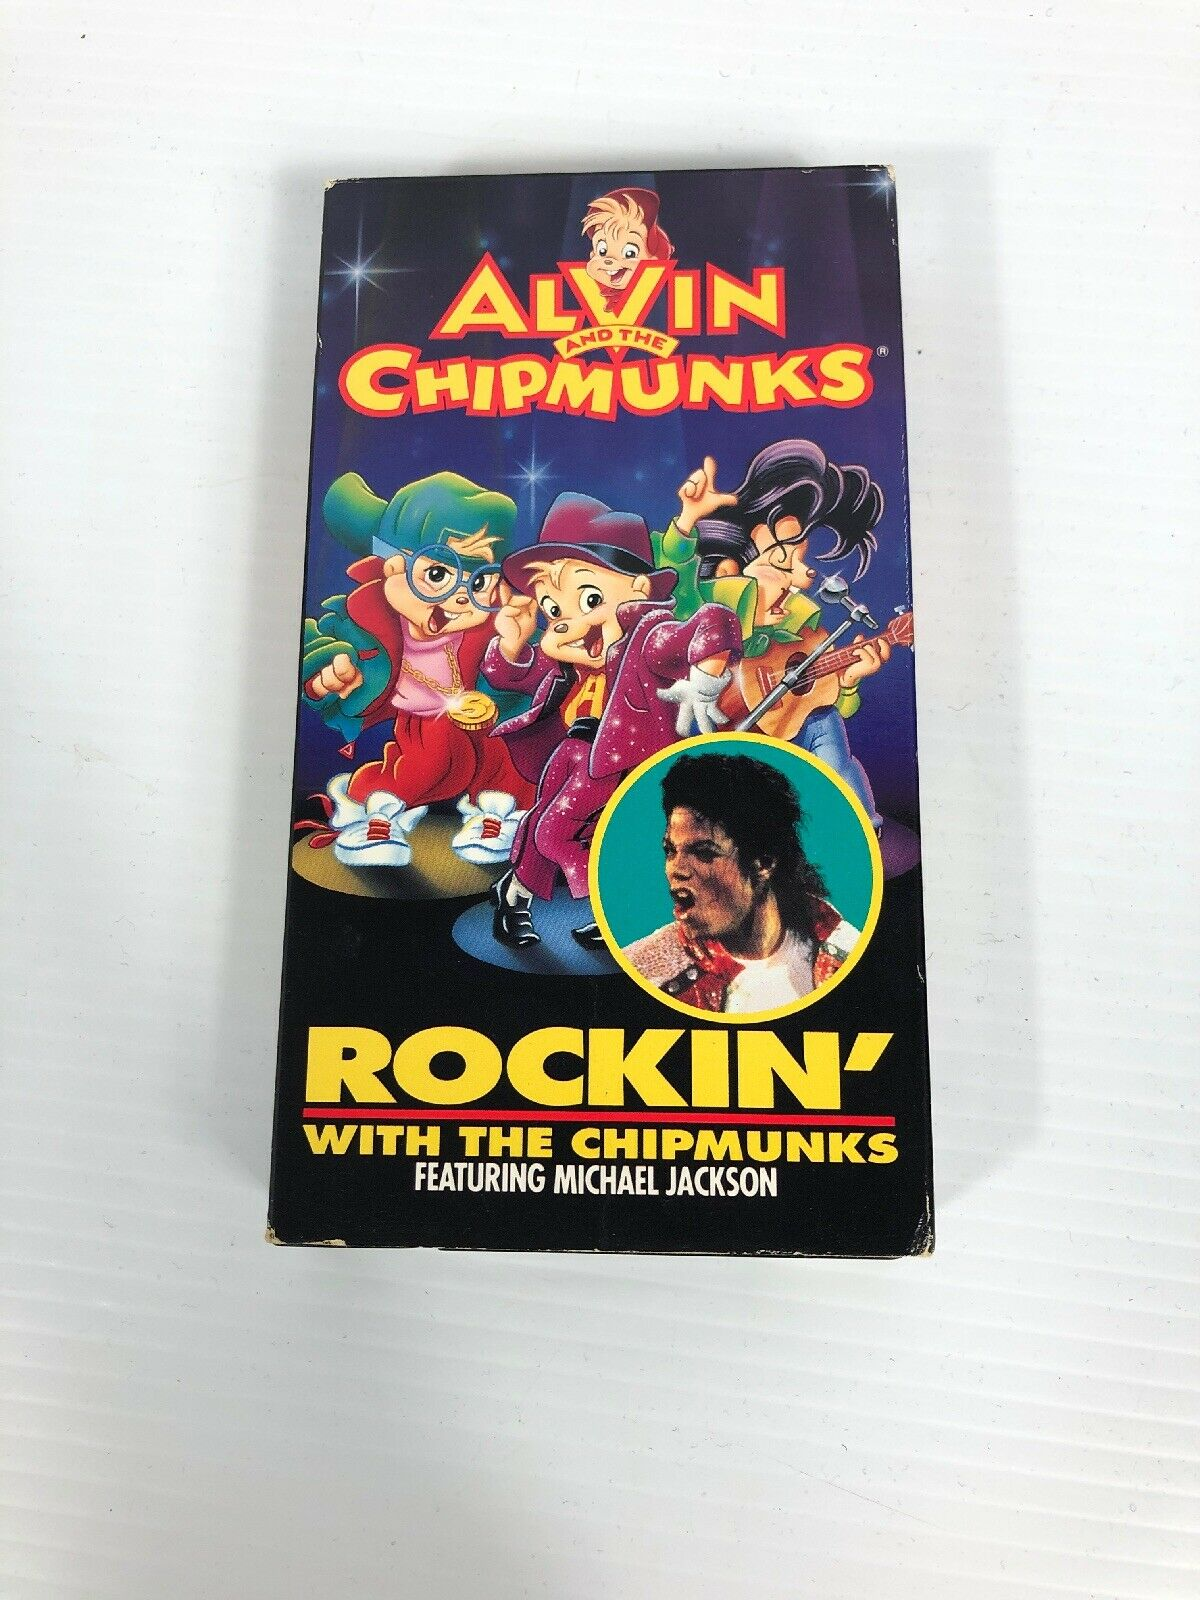 Alvin and the Chipmunks: Rockin' with the Chipmunks (1992 VHS)